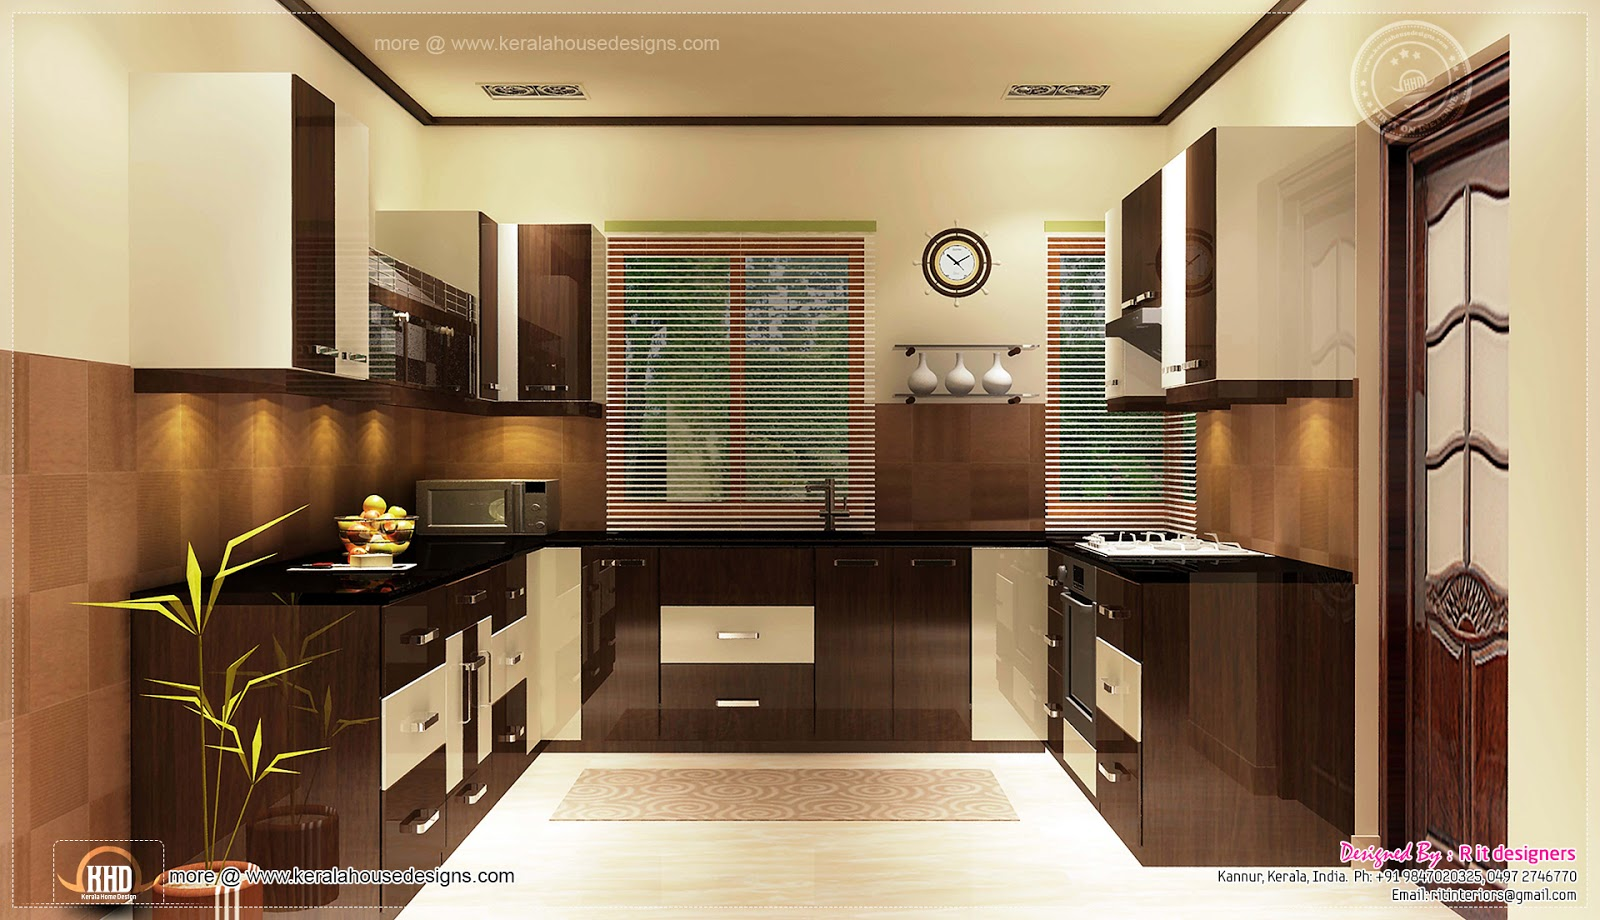 Home interior designs by rit designers kerala home design and floor plans Home design and cost